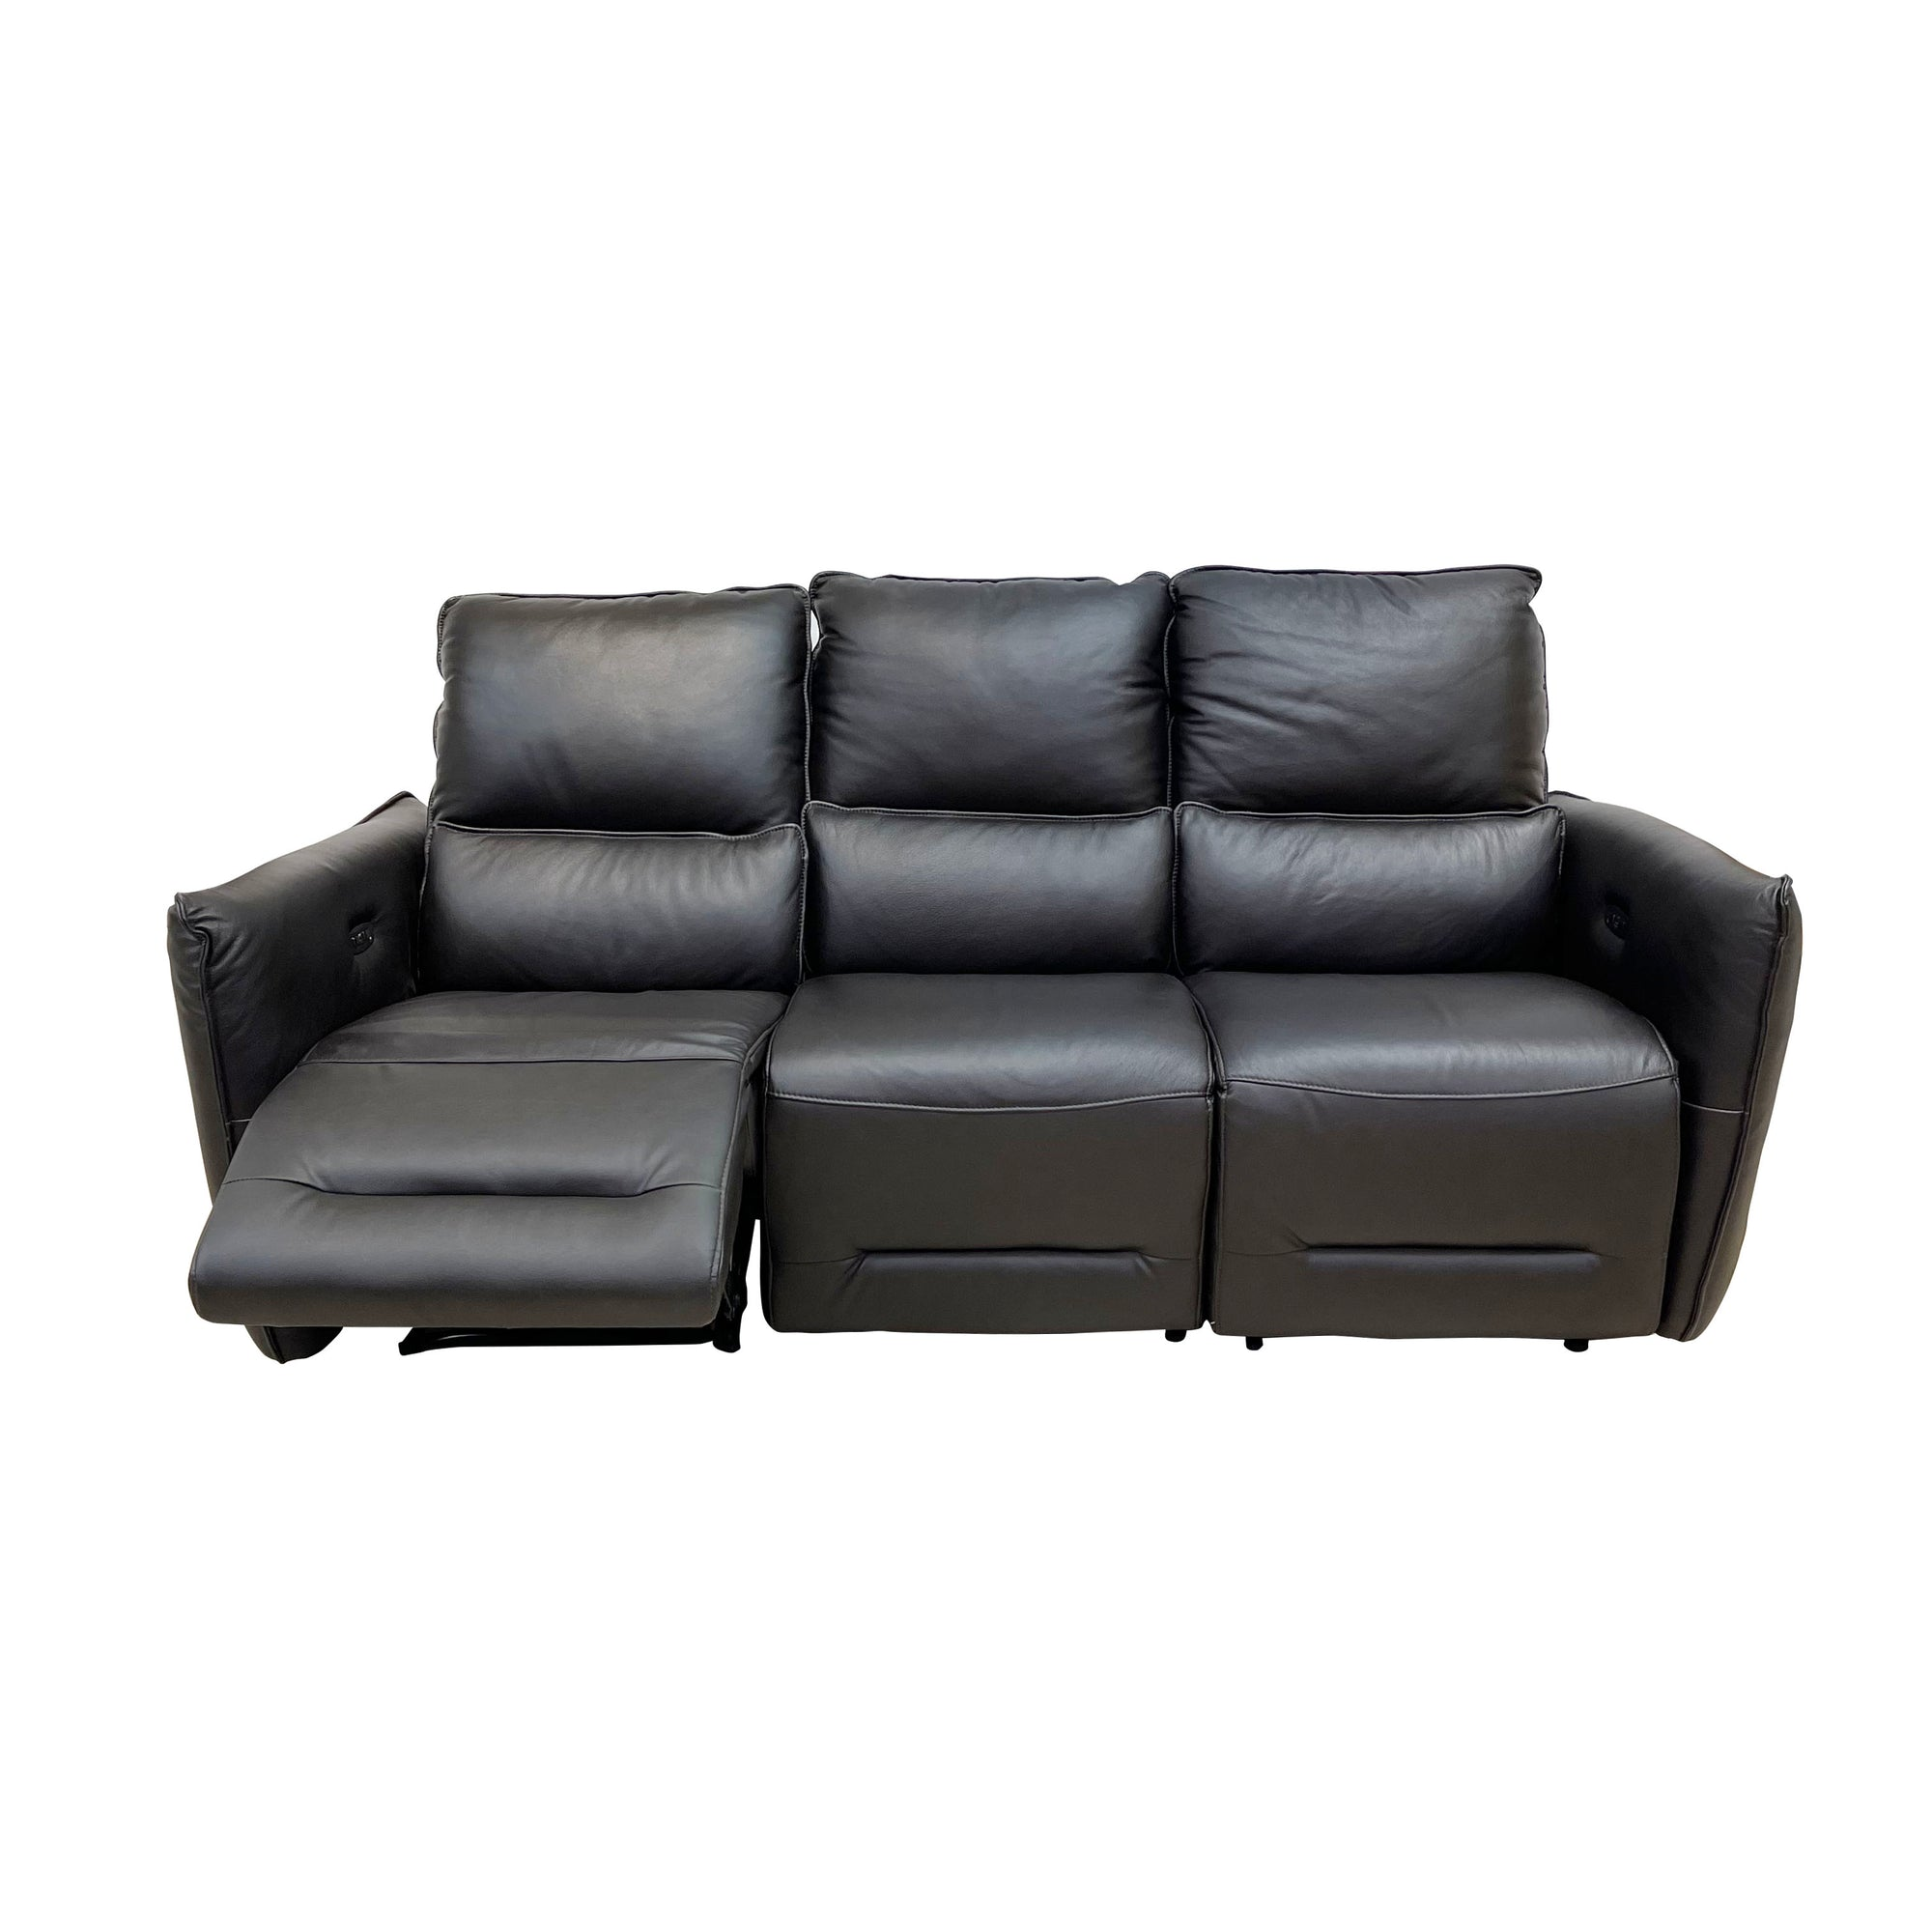 ISE-3199 Half-Leather 2.5/3 Seater Sofa (I)